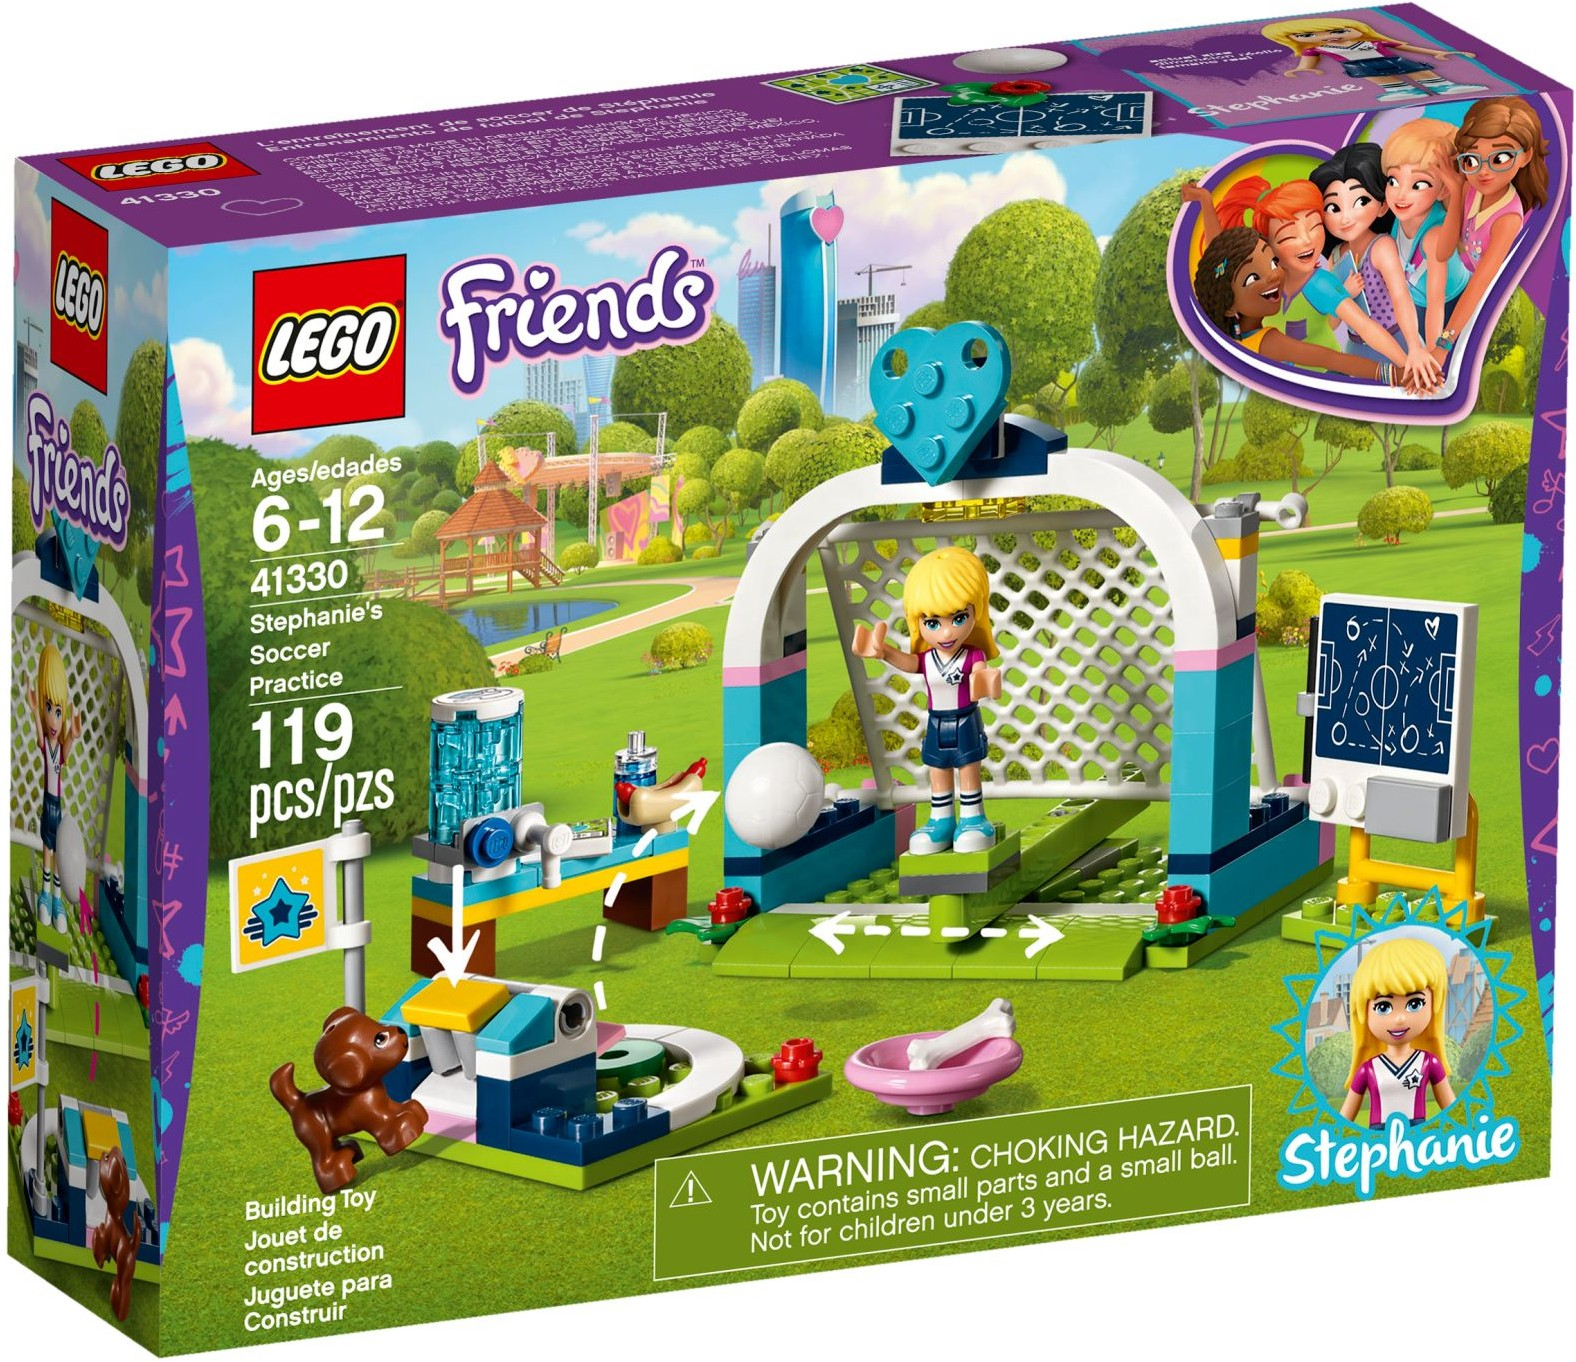 LEGO Friends Sets: 41330 Stephanie's Soccer Practice NEW